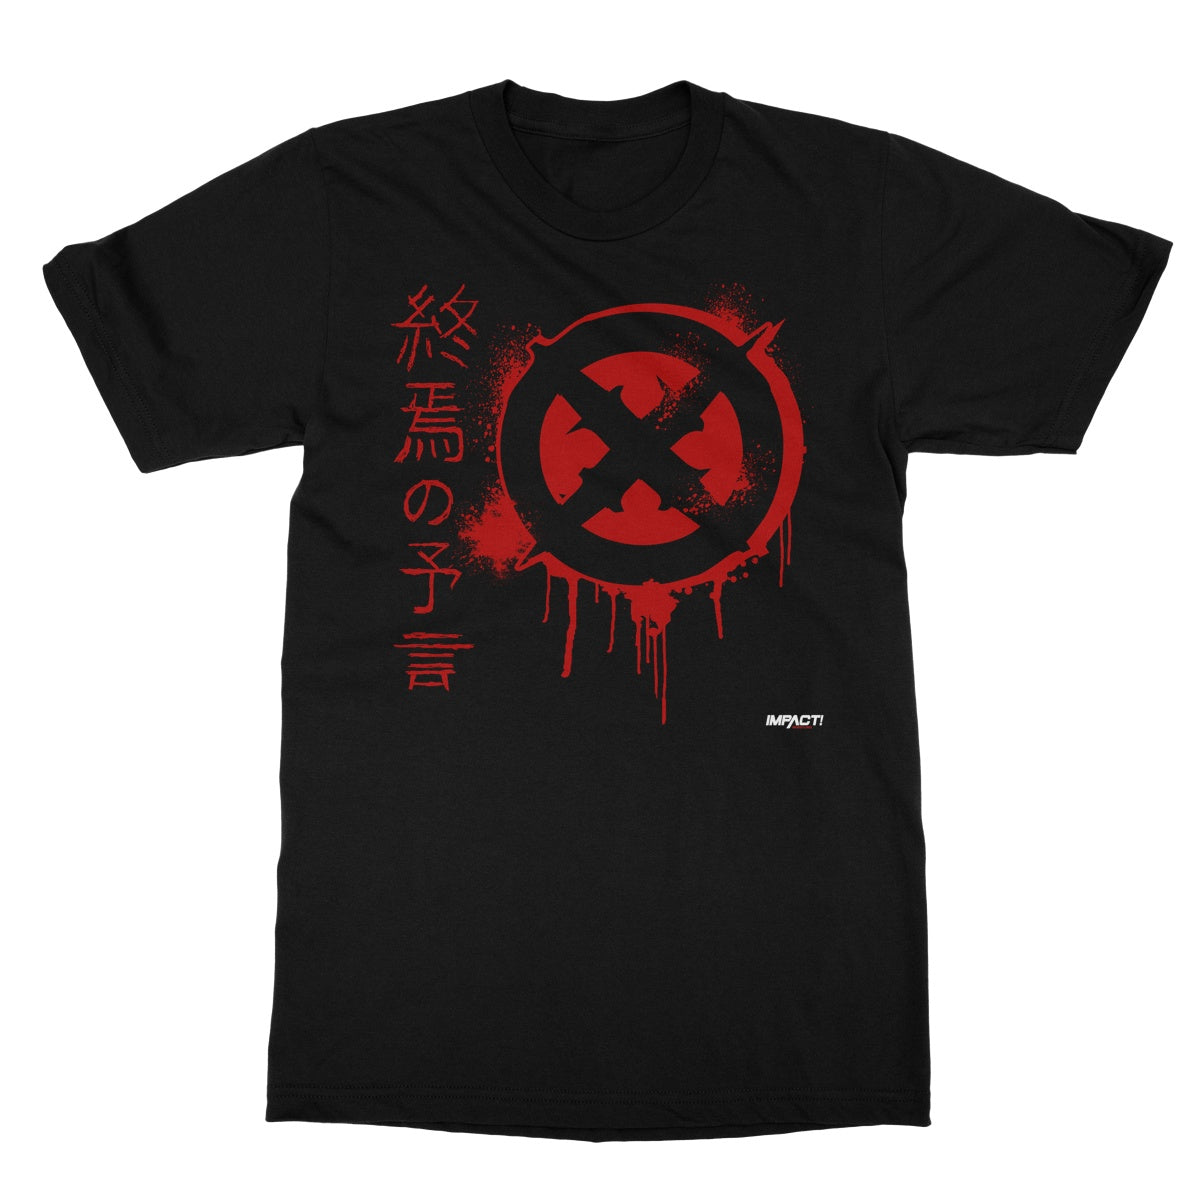 Killer Kross T-Shirt*